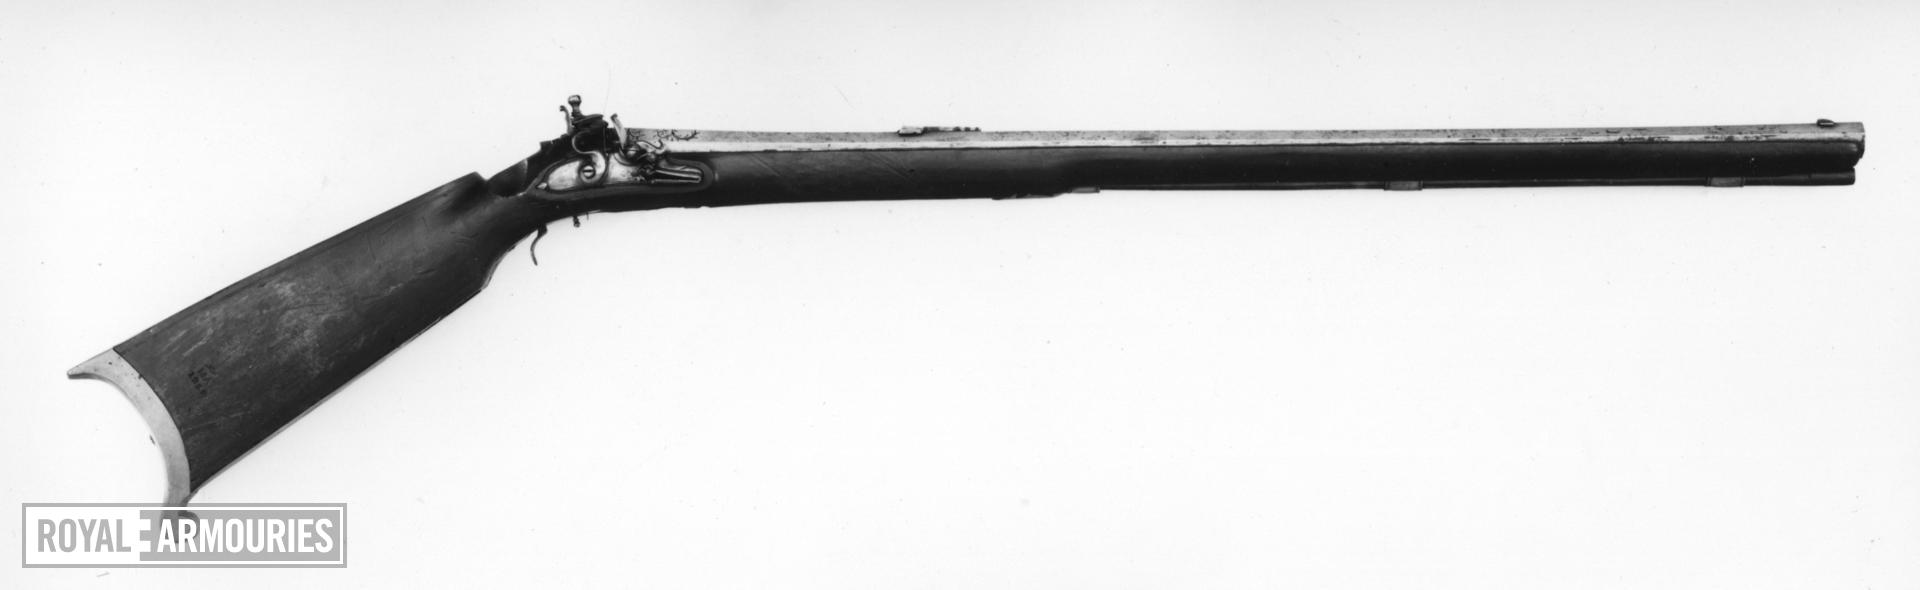 Flintlock muzzle-loading target rifle - By Jos Schuller